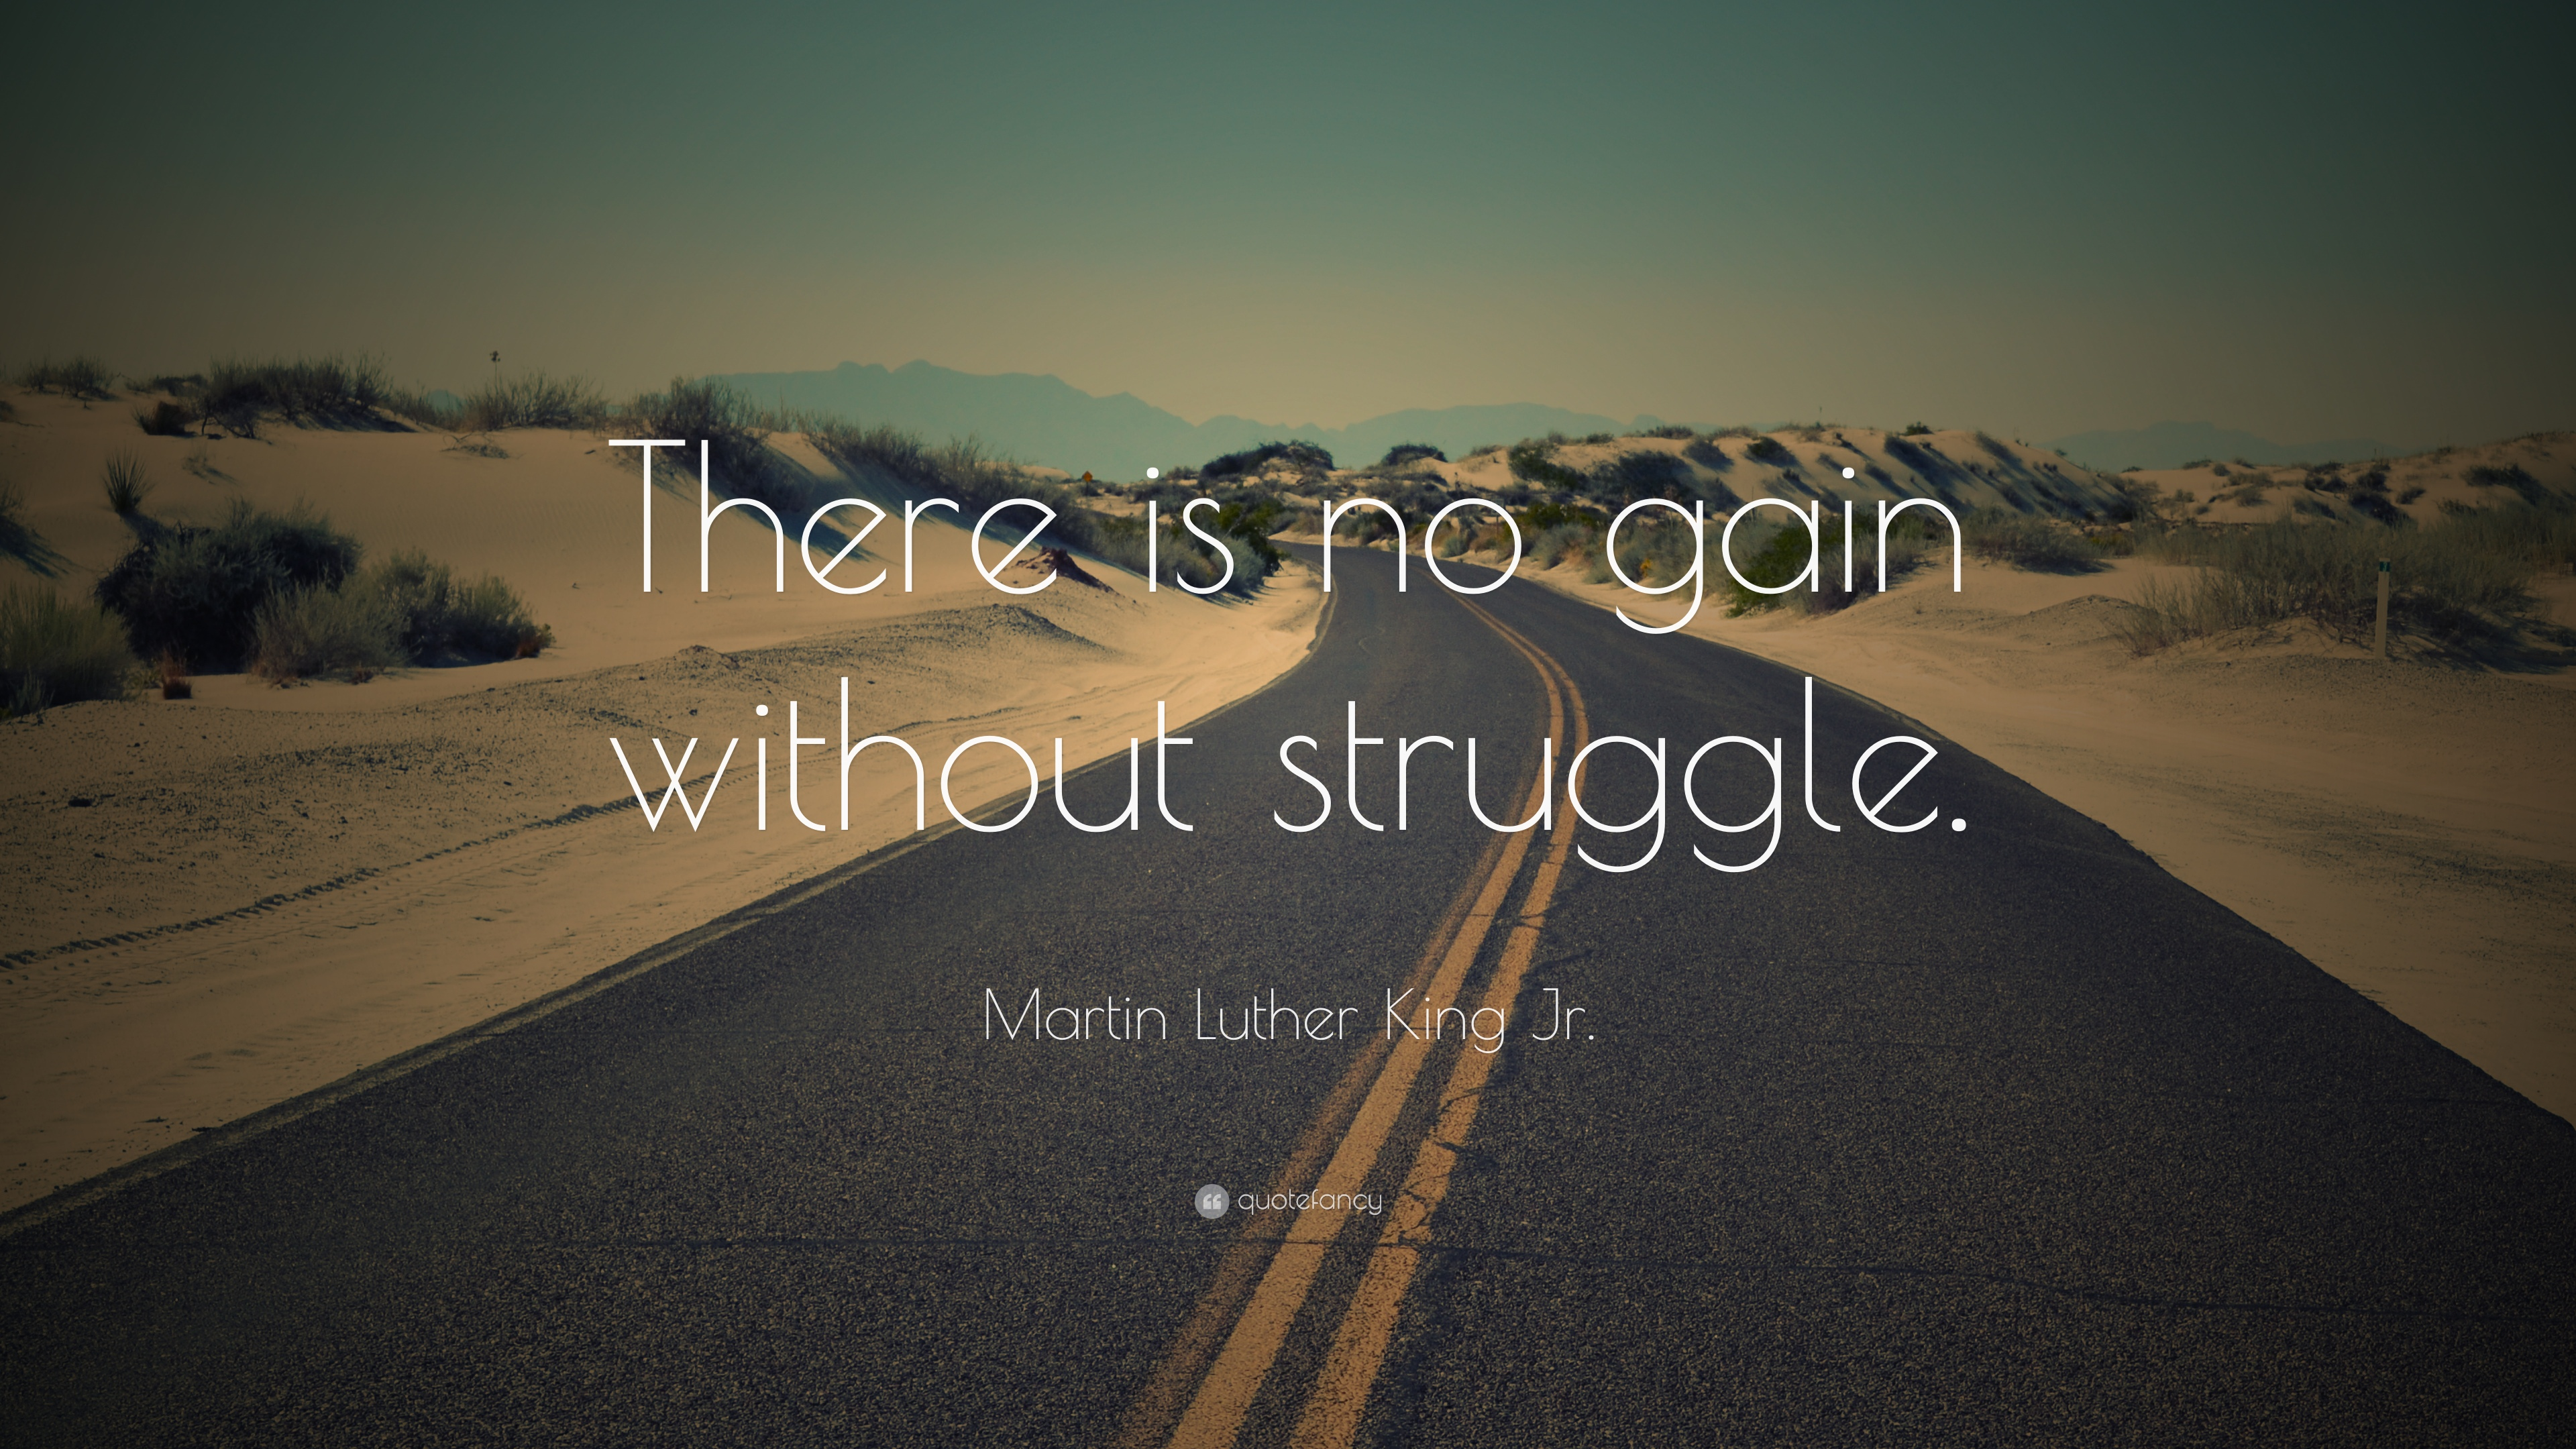 Leadership Quotes Wallpapers Hd Martin Luther King Jr Quote There Is No Gain Without